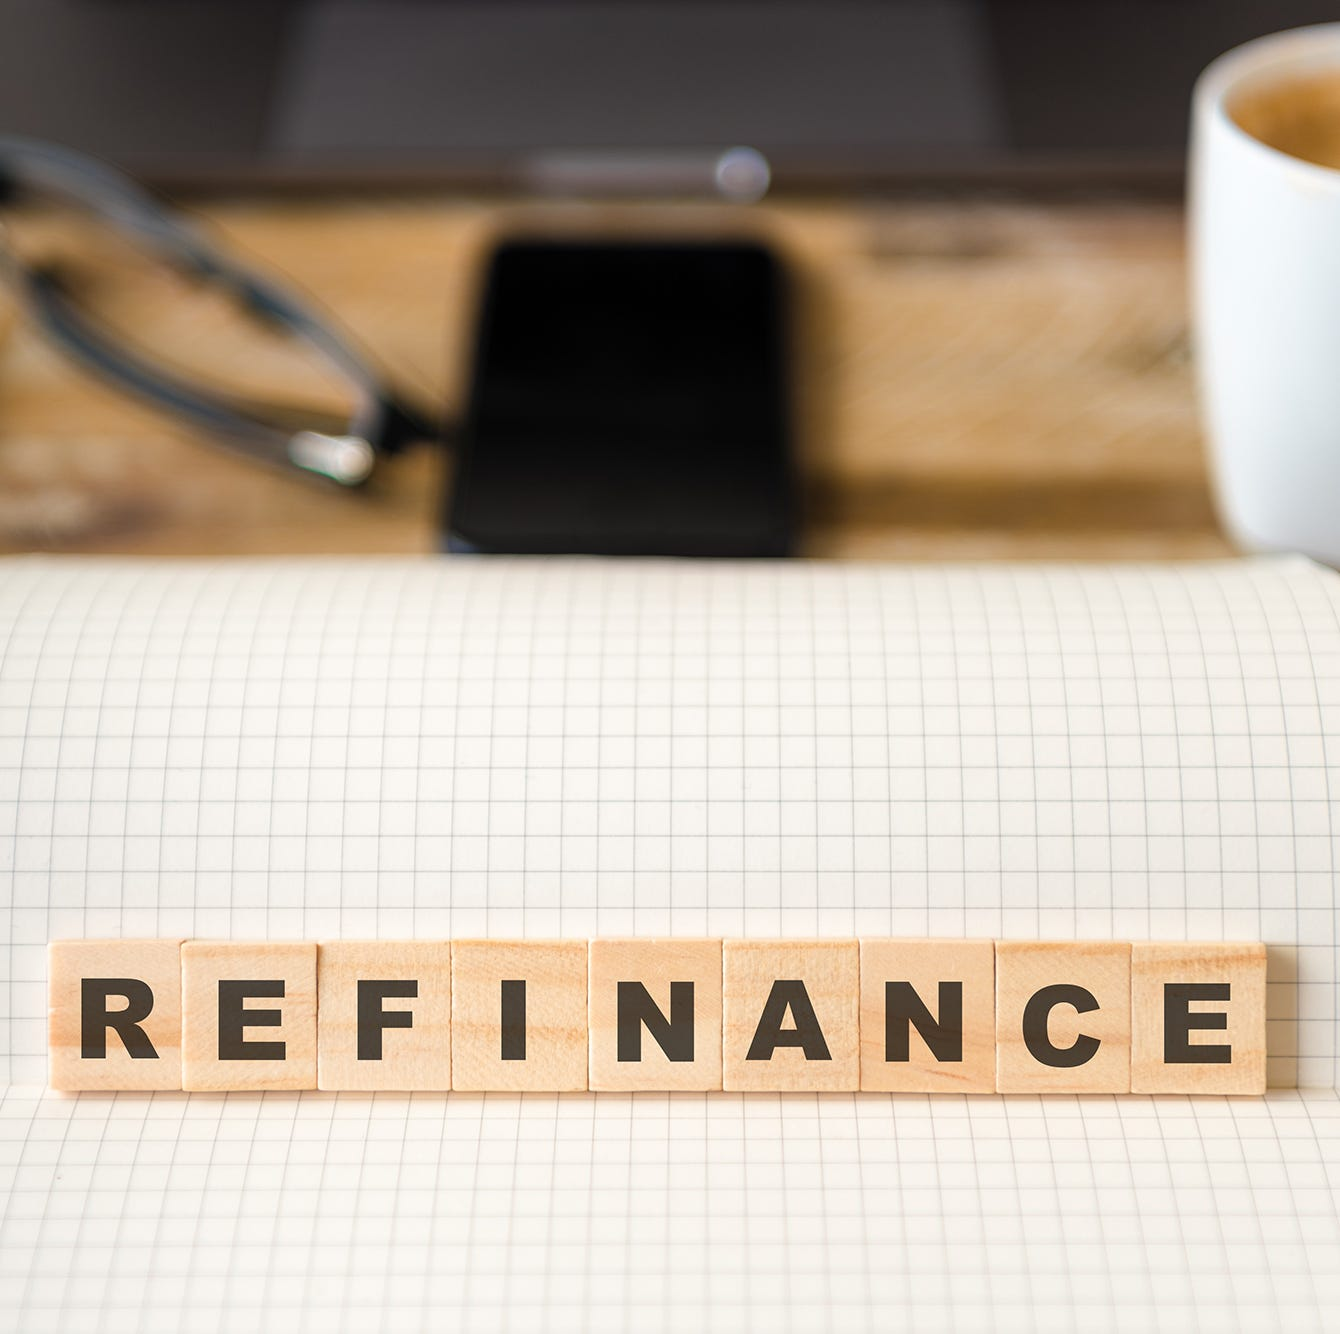 Should You Refinance?